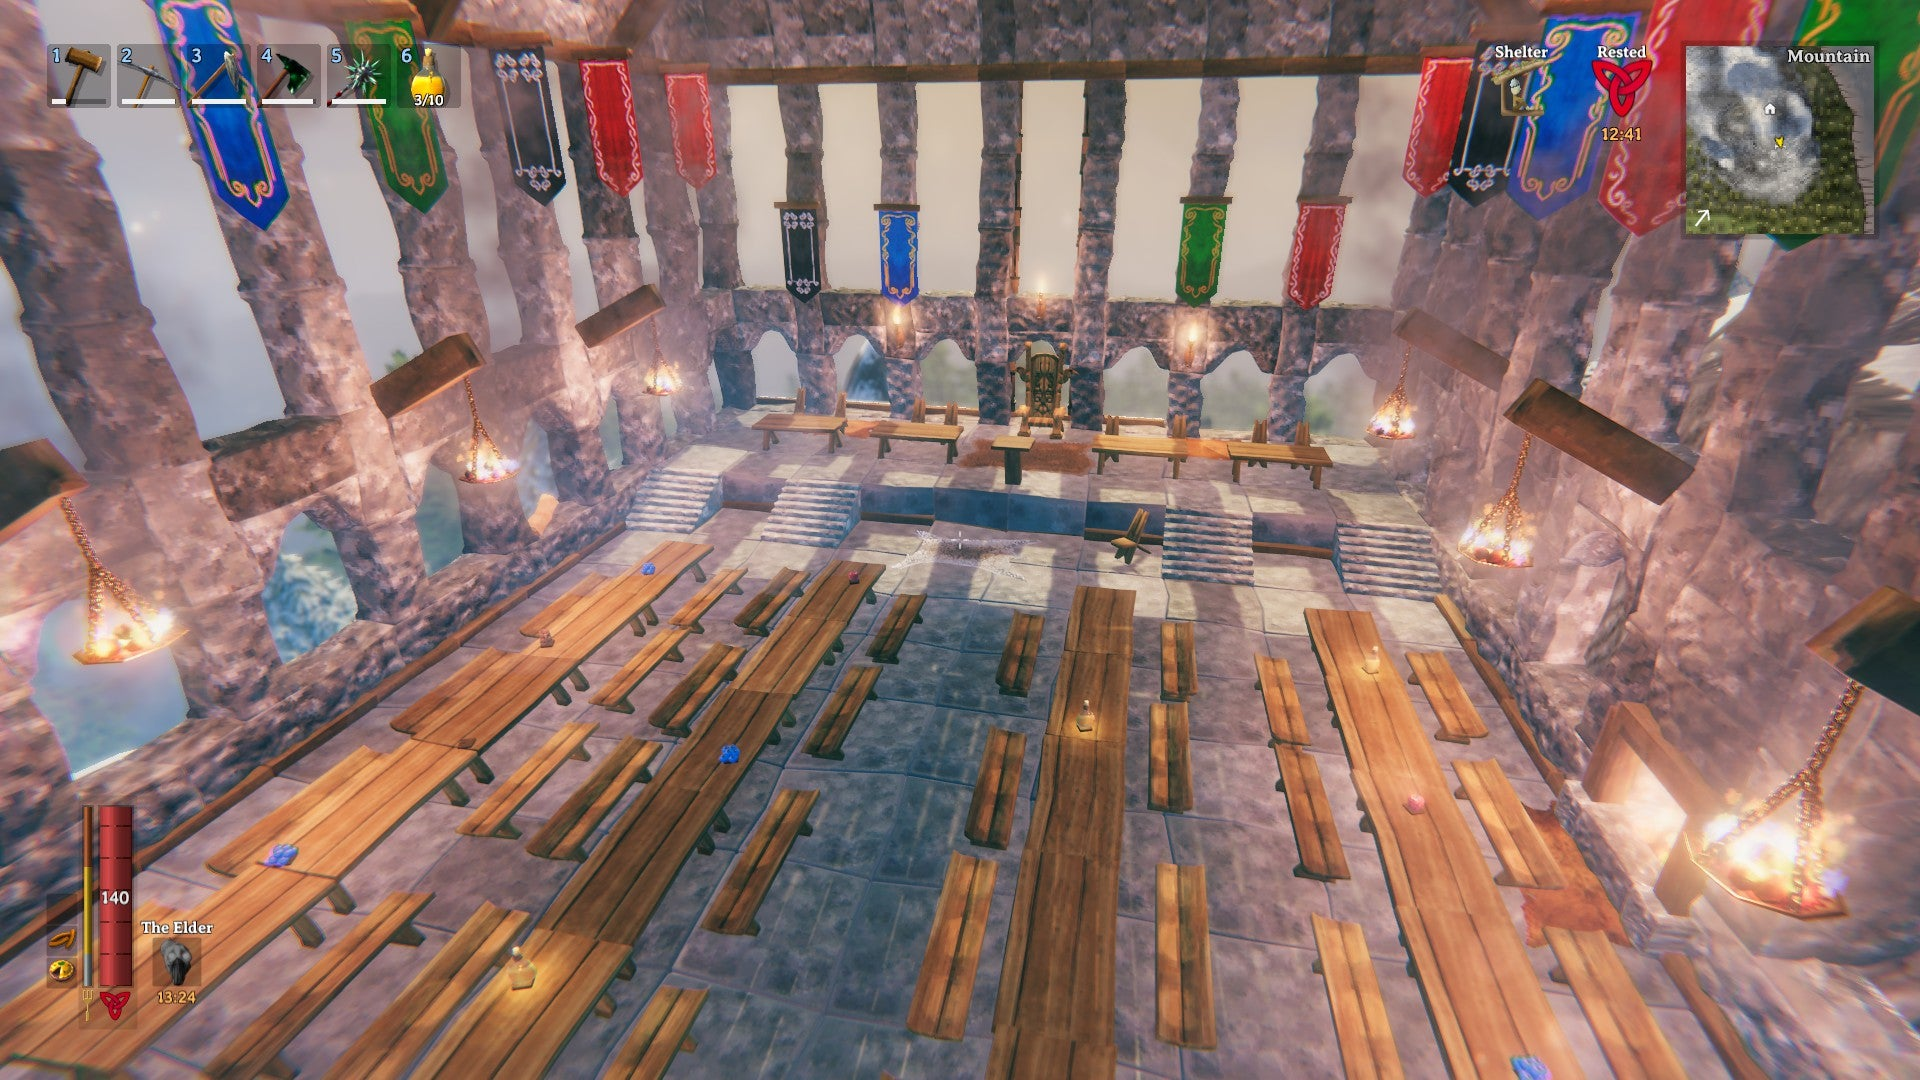 The player managed to recreate the Great Hall in detail despite the game's limited resources.